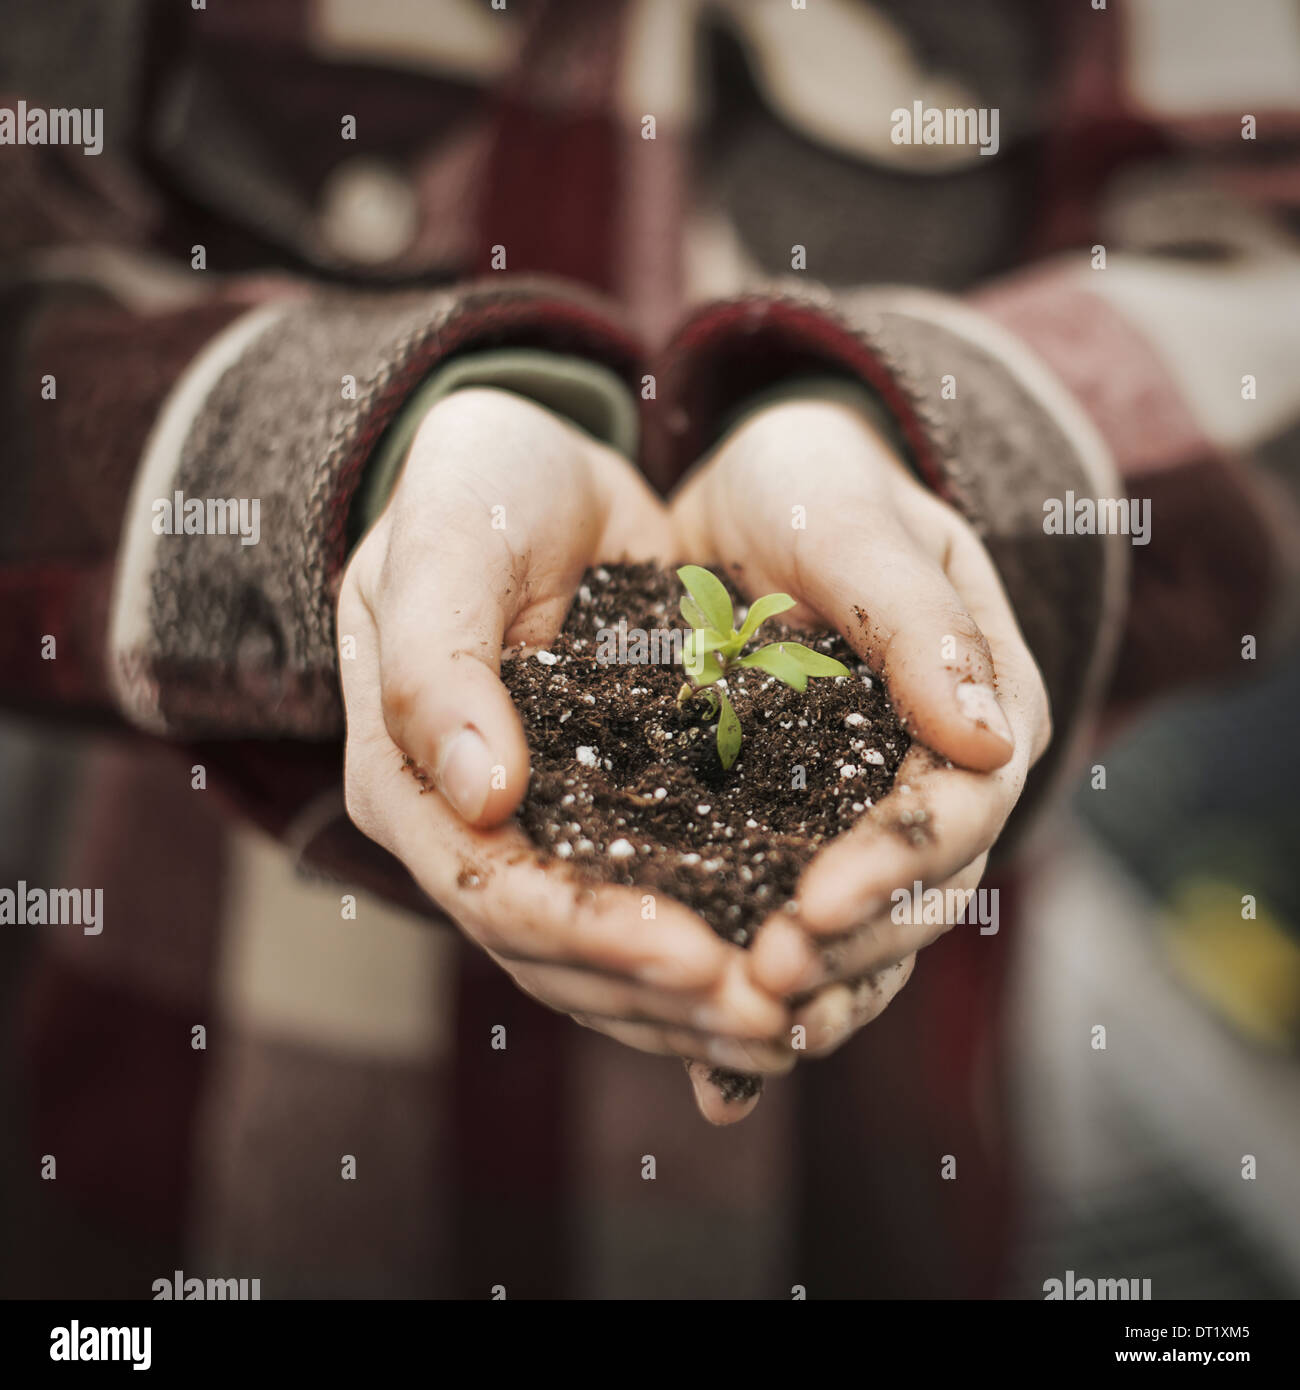 A person in a commercial glasshouse holding a small plant seedling in soil in her cupped hands - Stock Image